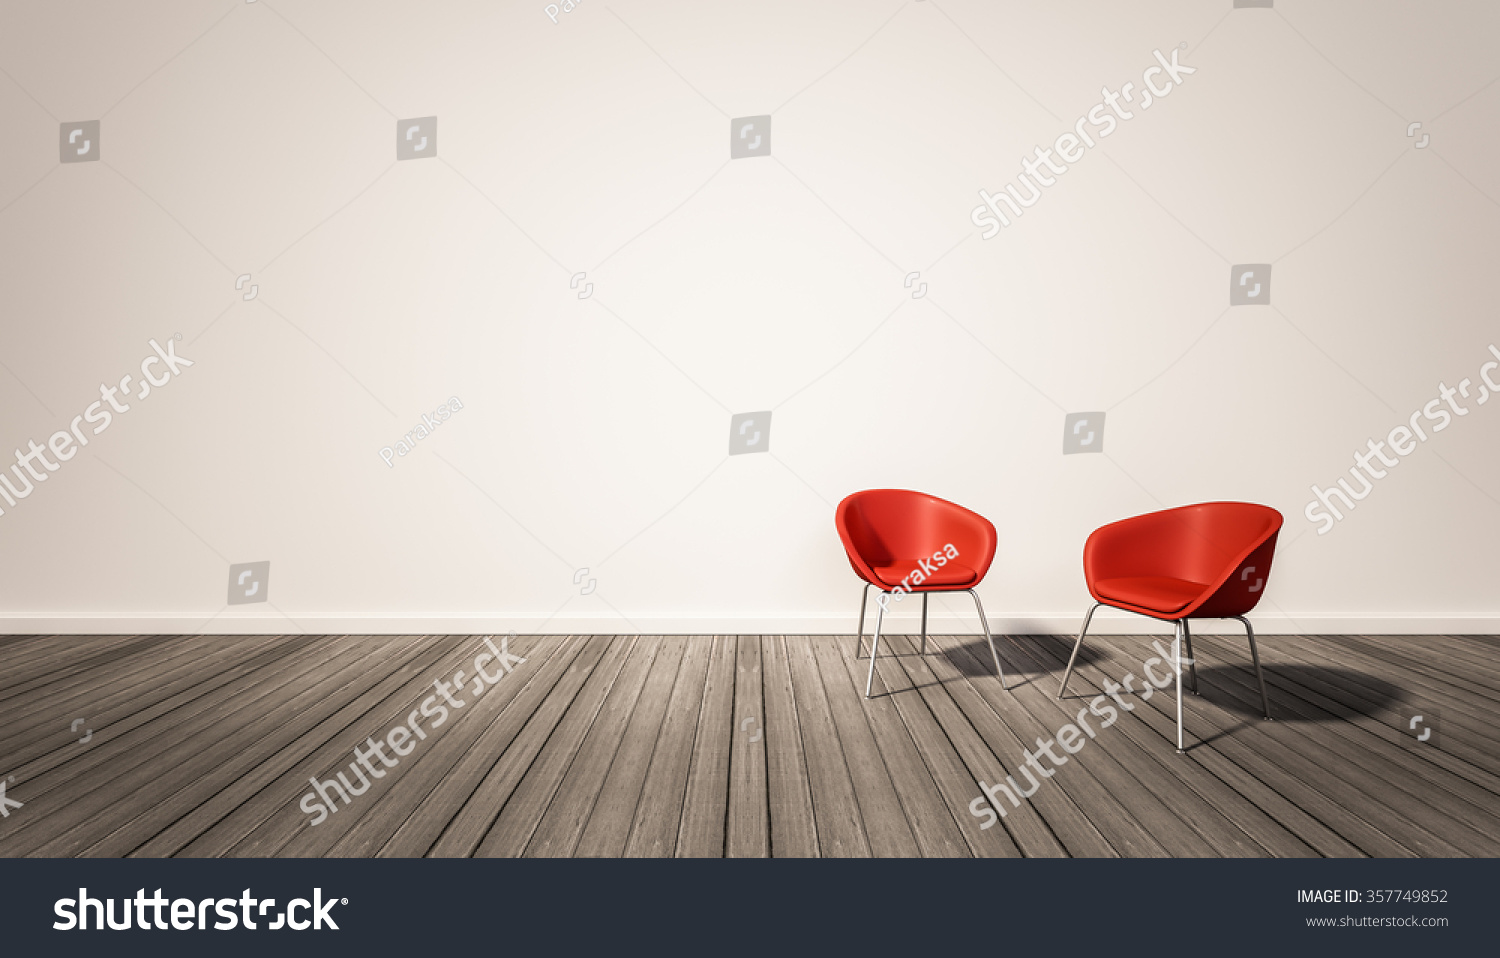 Hardwood Floor And White Wall, With Red Chairs, 3d Rendered